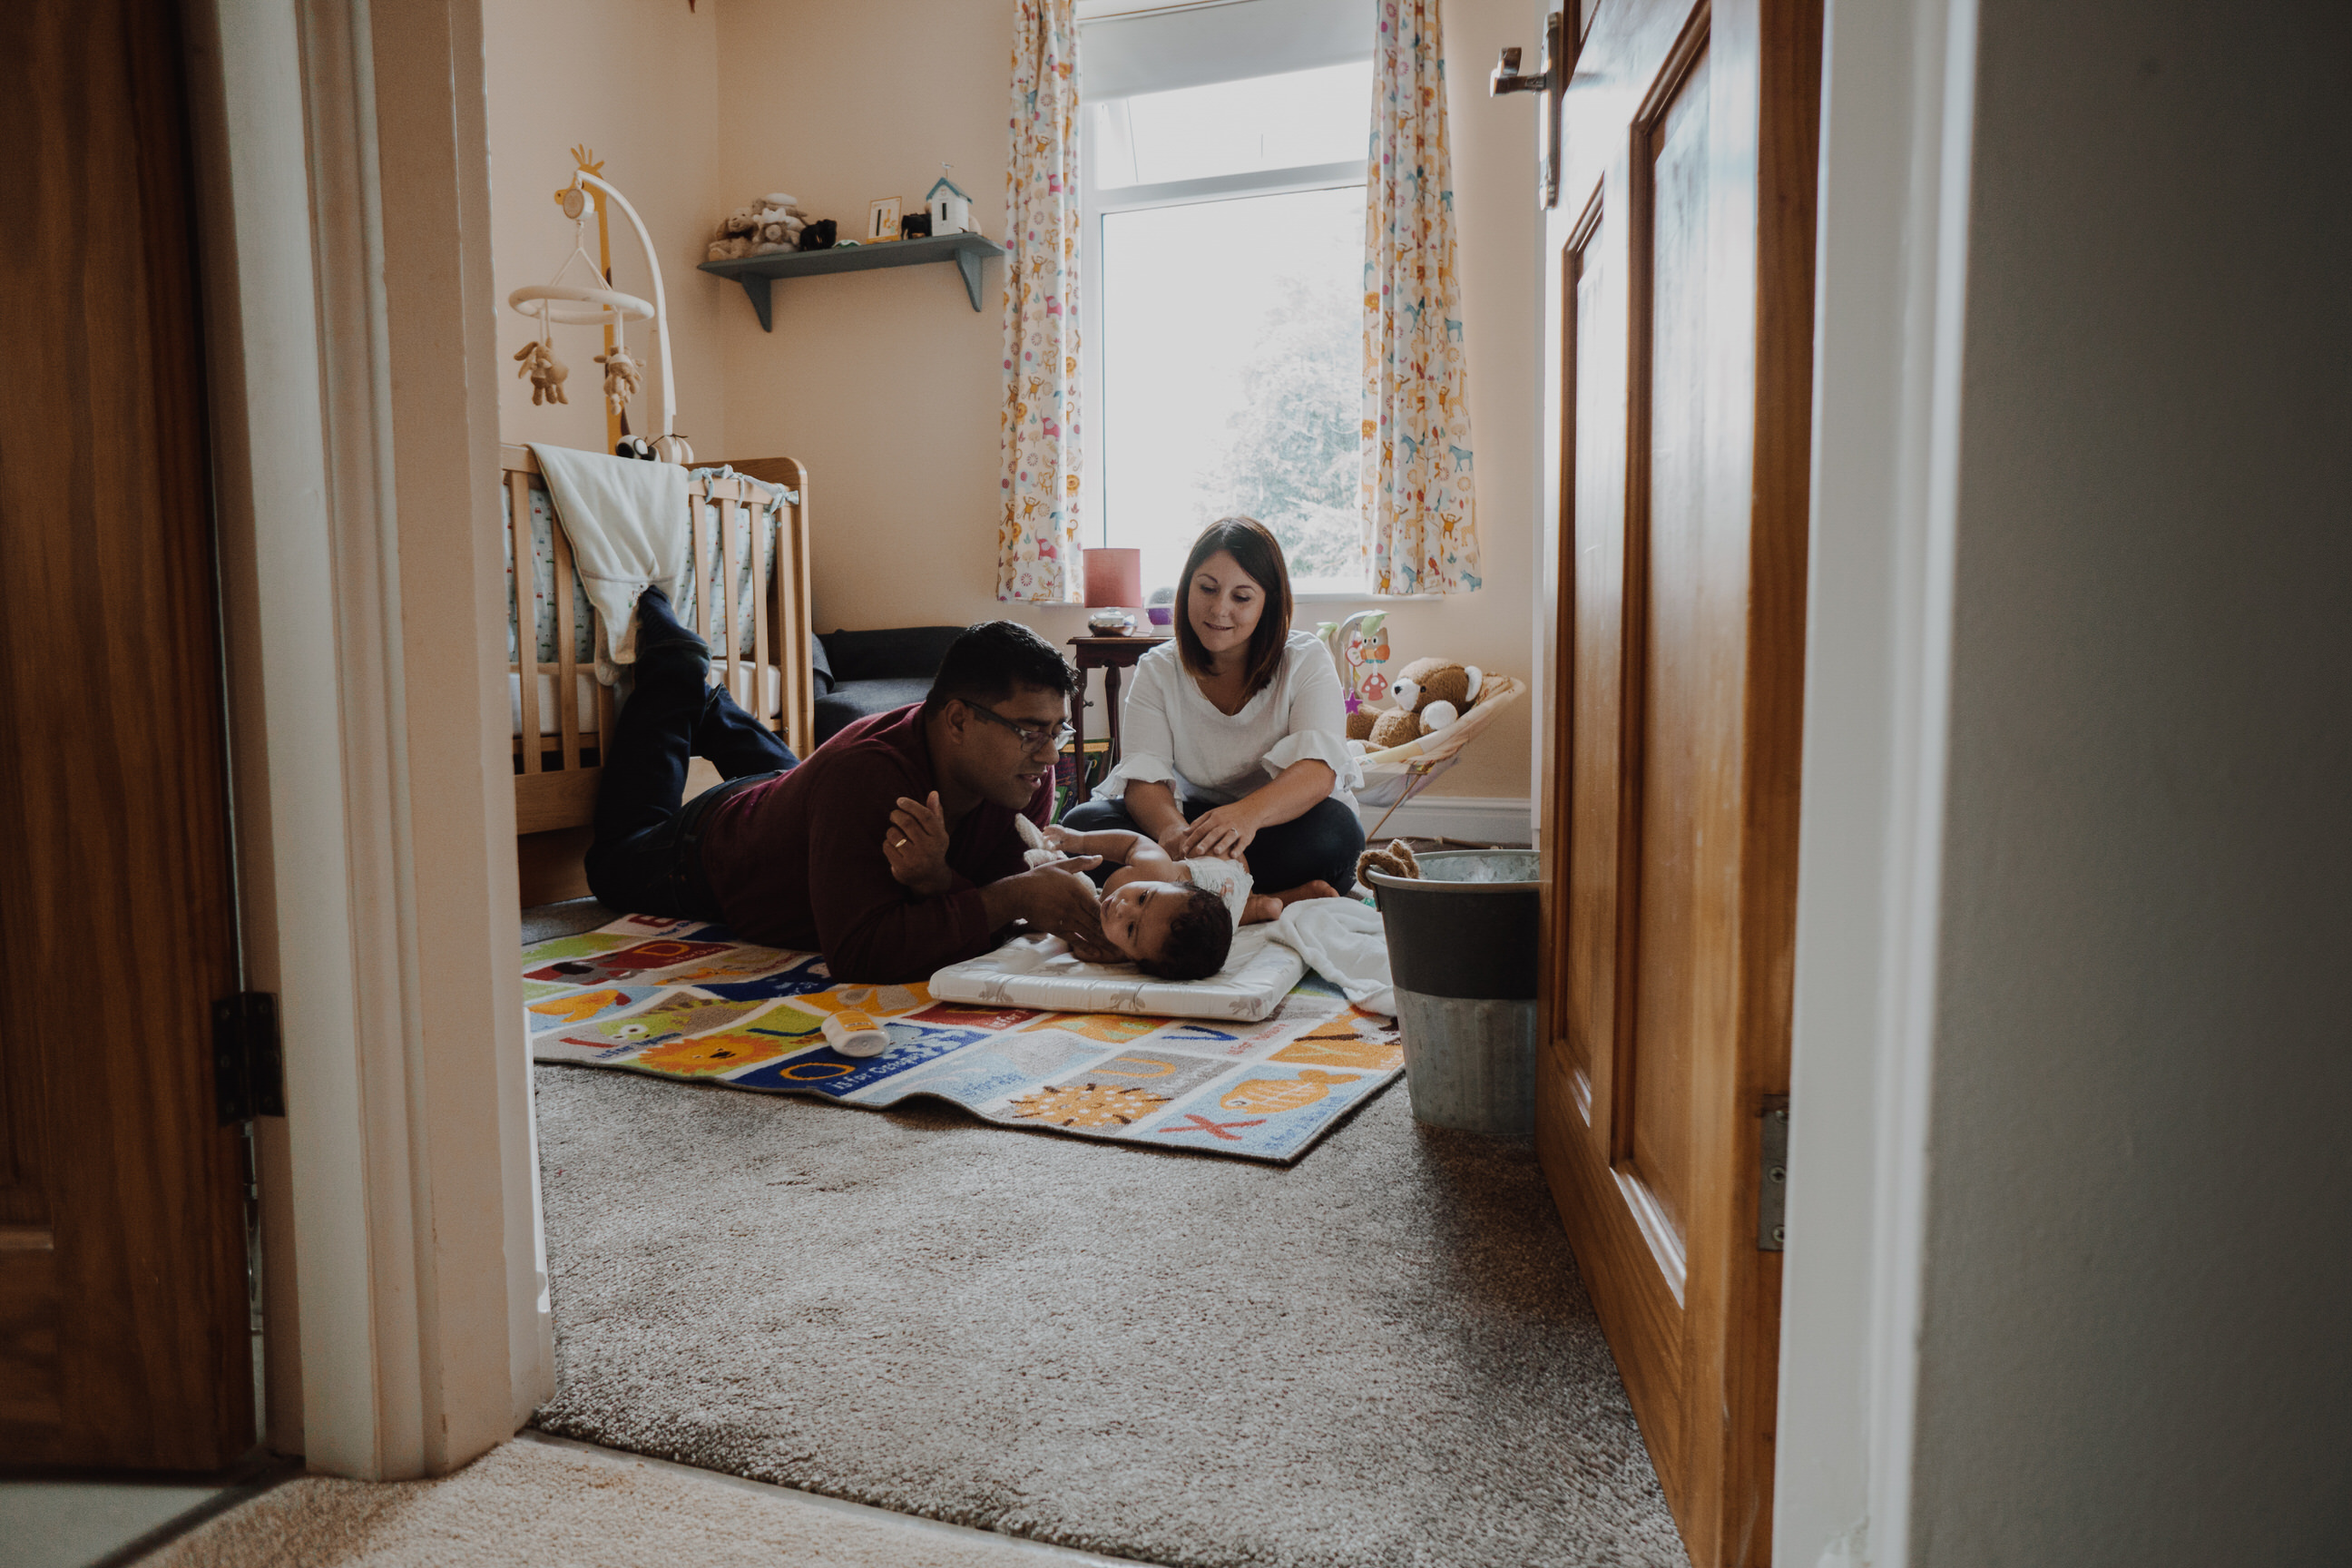 A mum and dad sit on the cream nursery bedroom floor during a nappy change at their home in Didsbury. The photo is taken through the bedroom door during their relaxed home family photography shoot near Manchester